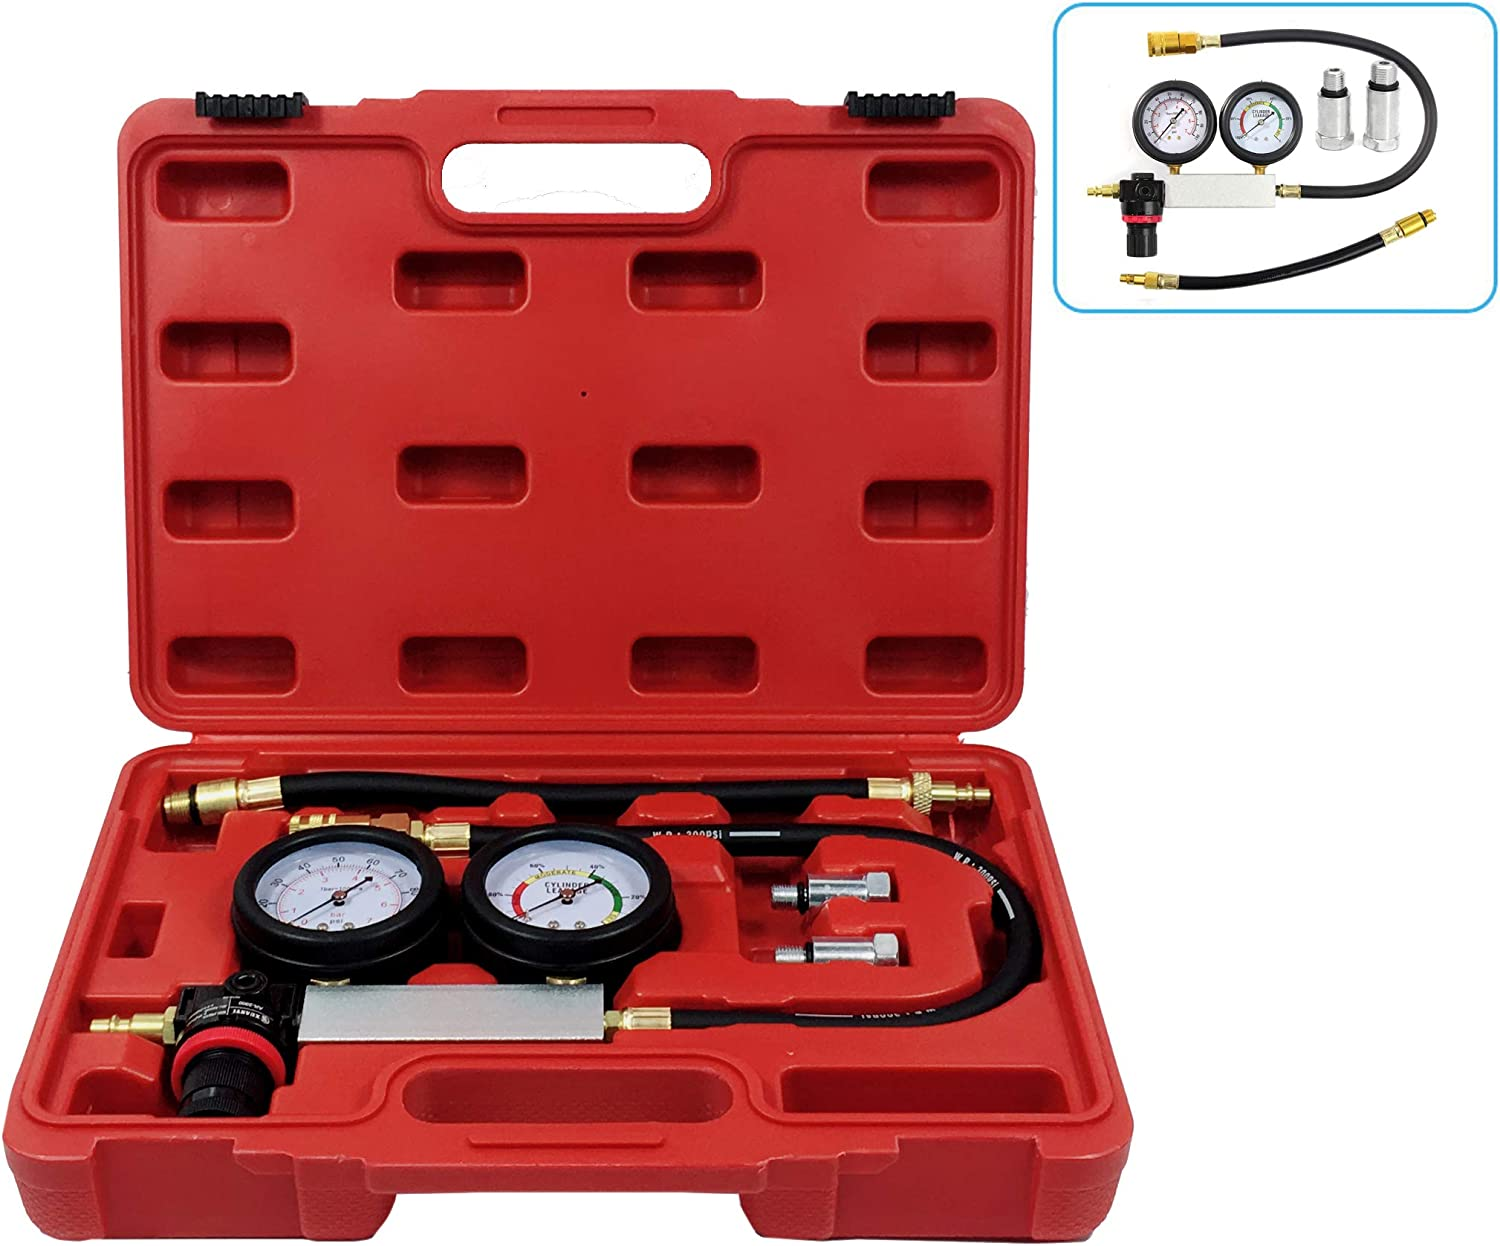 ThreeH TU-21 Cylinder Leak Detector Engine Compression Tester Gauge Kit for Petrol Engine with 12 and 14mm Spark Plugs MA05